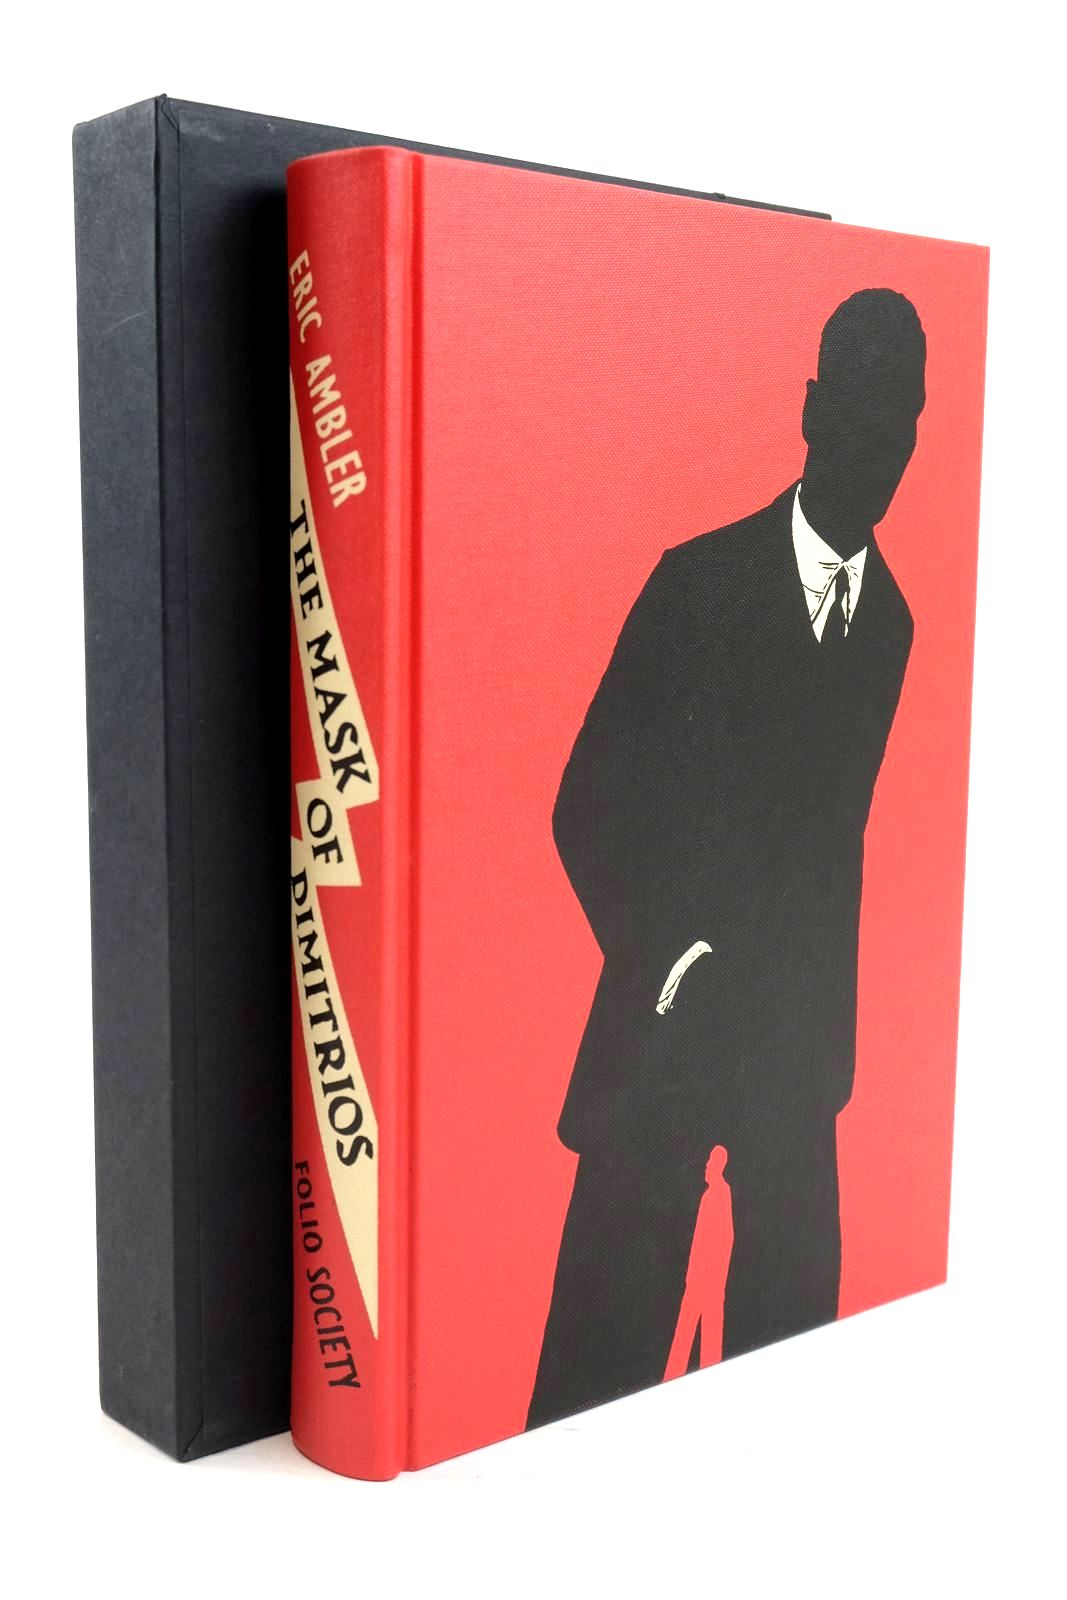 Photo of THE MASK OF DIMITRIOS written by Ambler, Eric illustrated by Blow, Paul published by Folio Society (STOCK CODE: 1319873)  for sale by Stella & Rose's Books